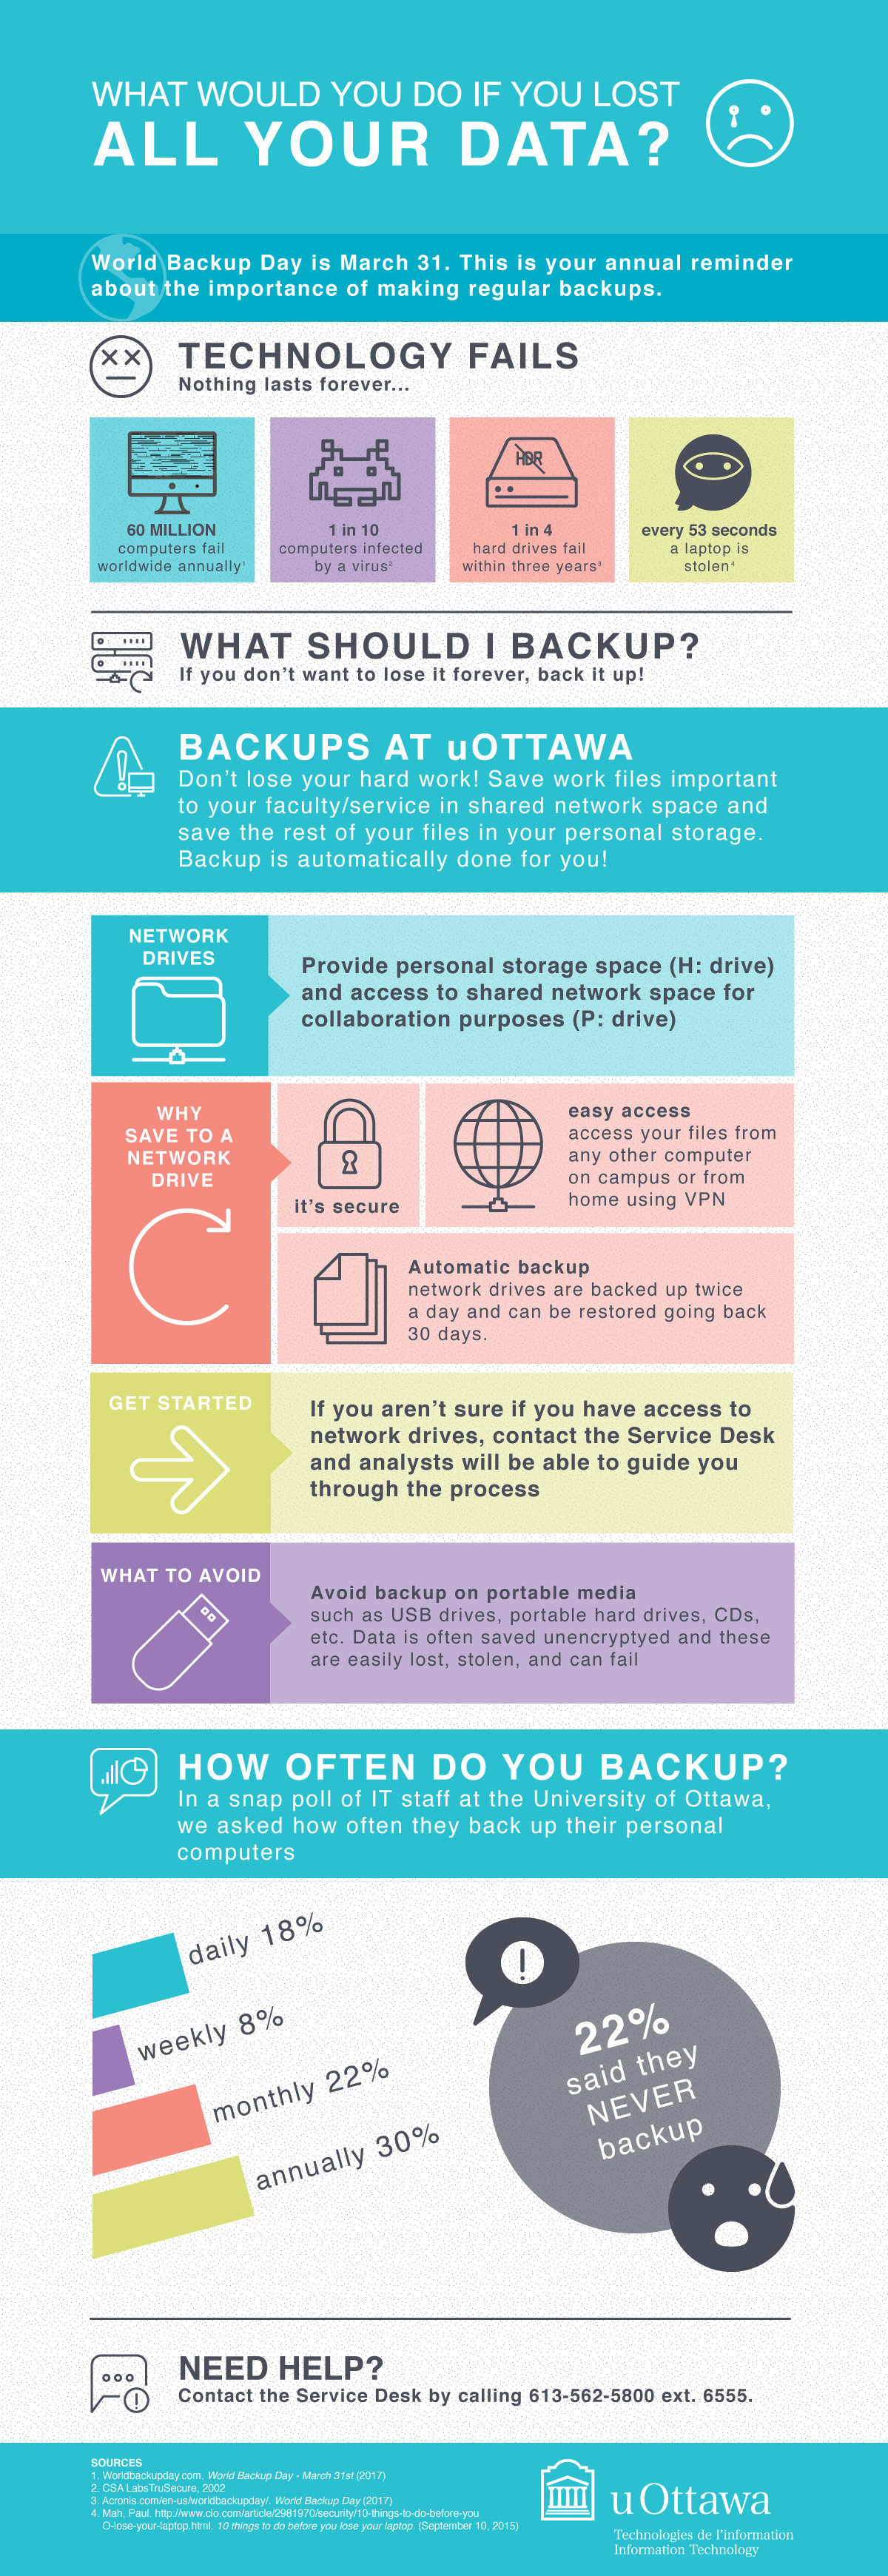 World backup day infographic. What would you do if you lost all your data?